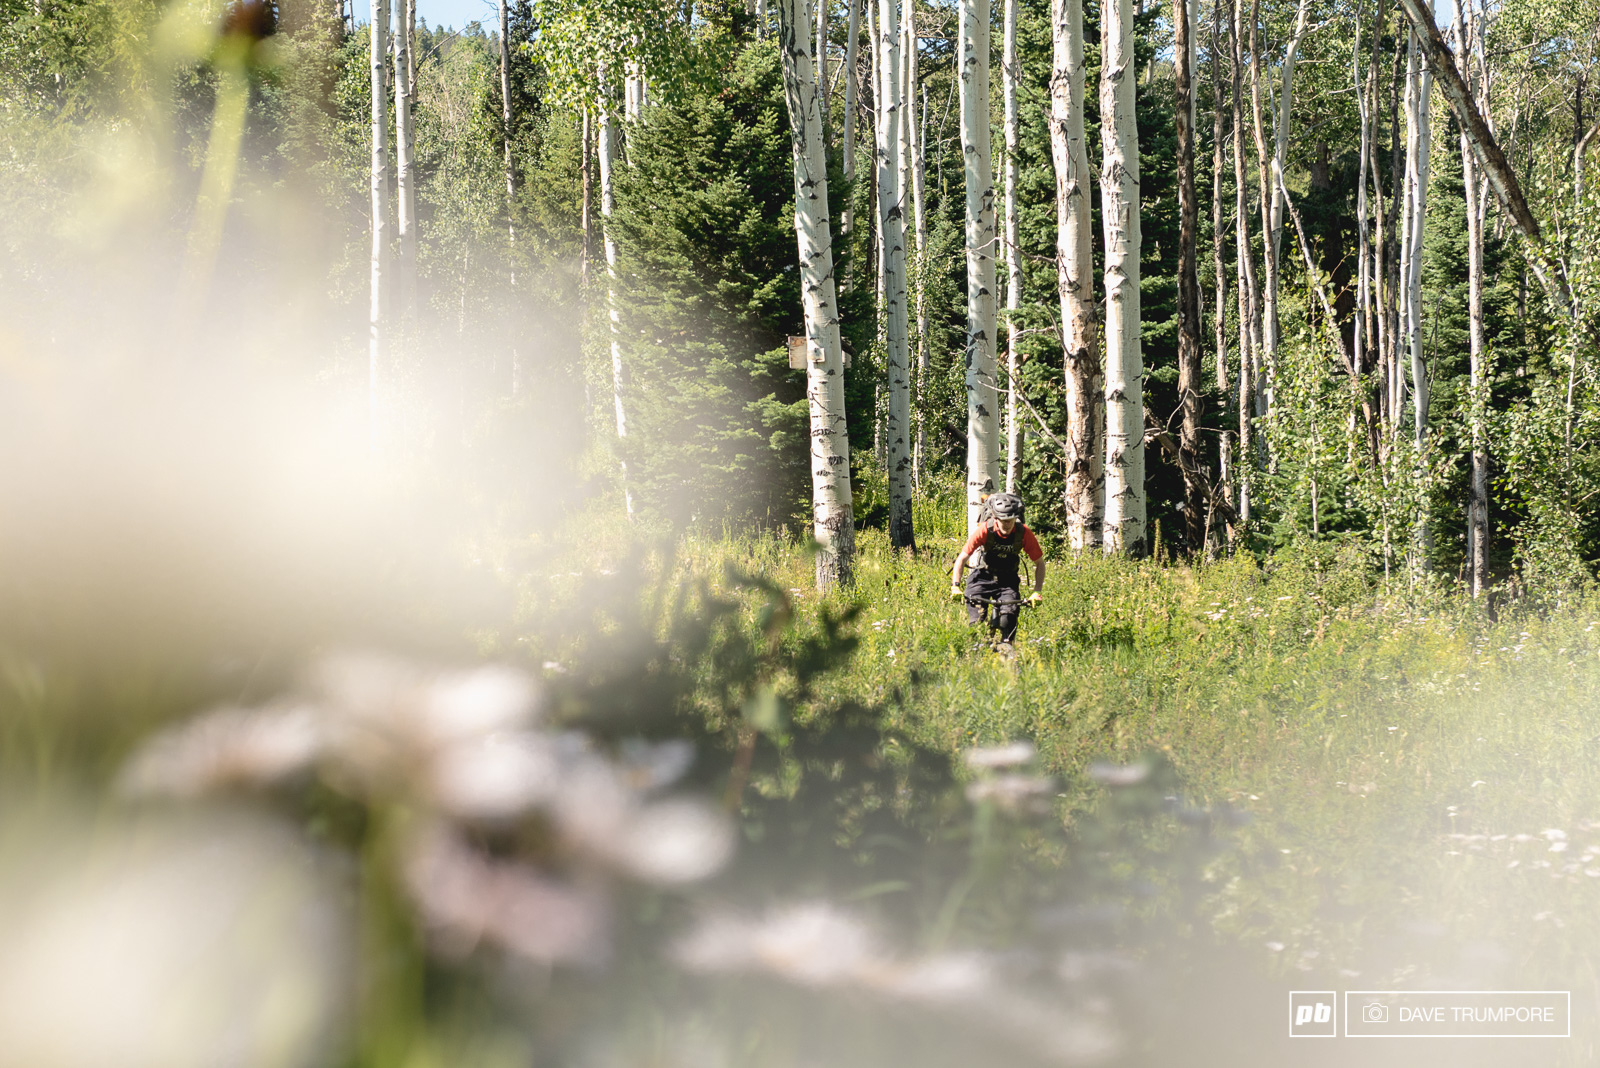 Classic Colorado riding is on top this weekend with single track twisting in and out of aspen trees and across open grassy meadows often times at very high speed.